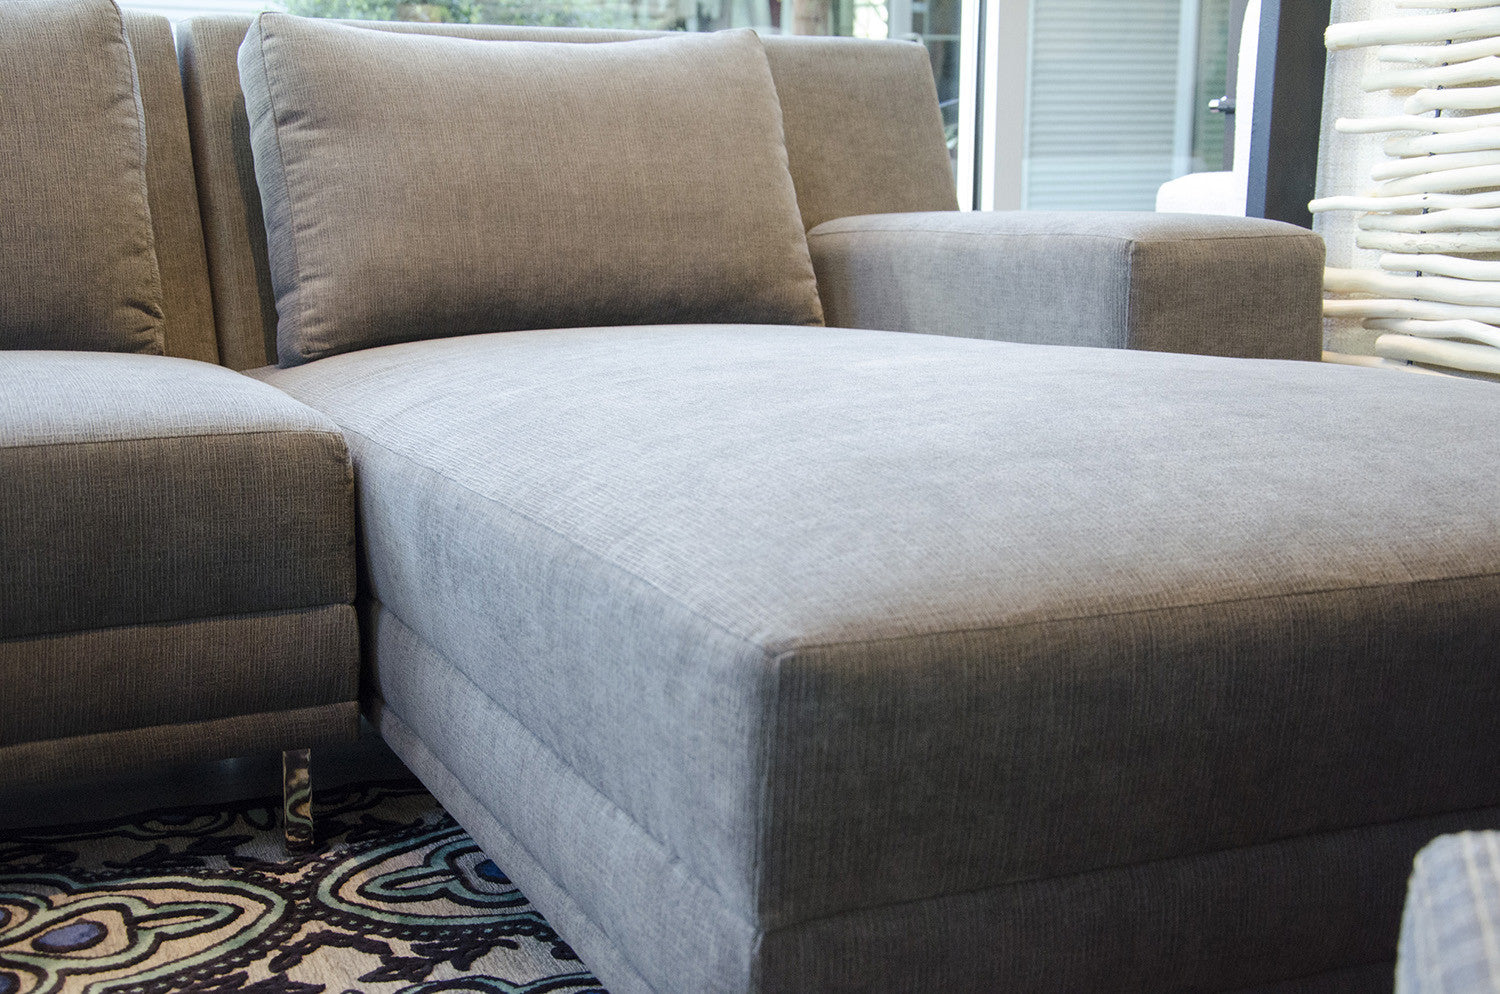 The piazza chaise sectional by lazar industries in crypton fabric five elements furniture